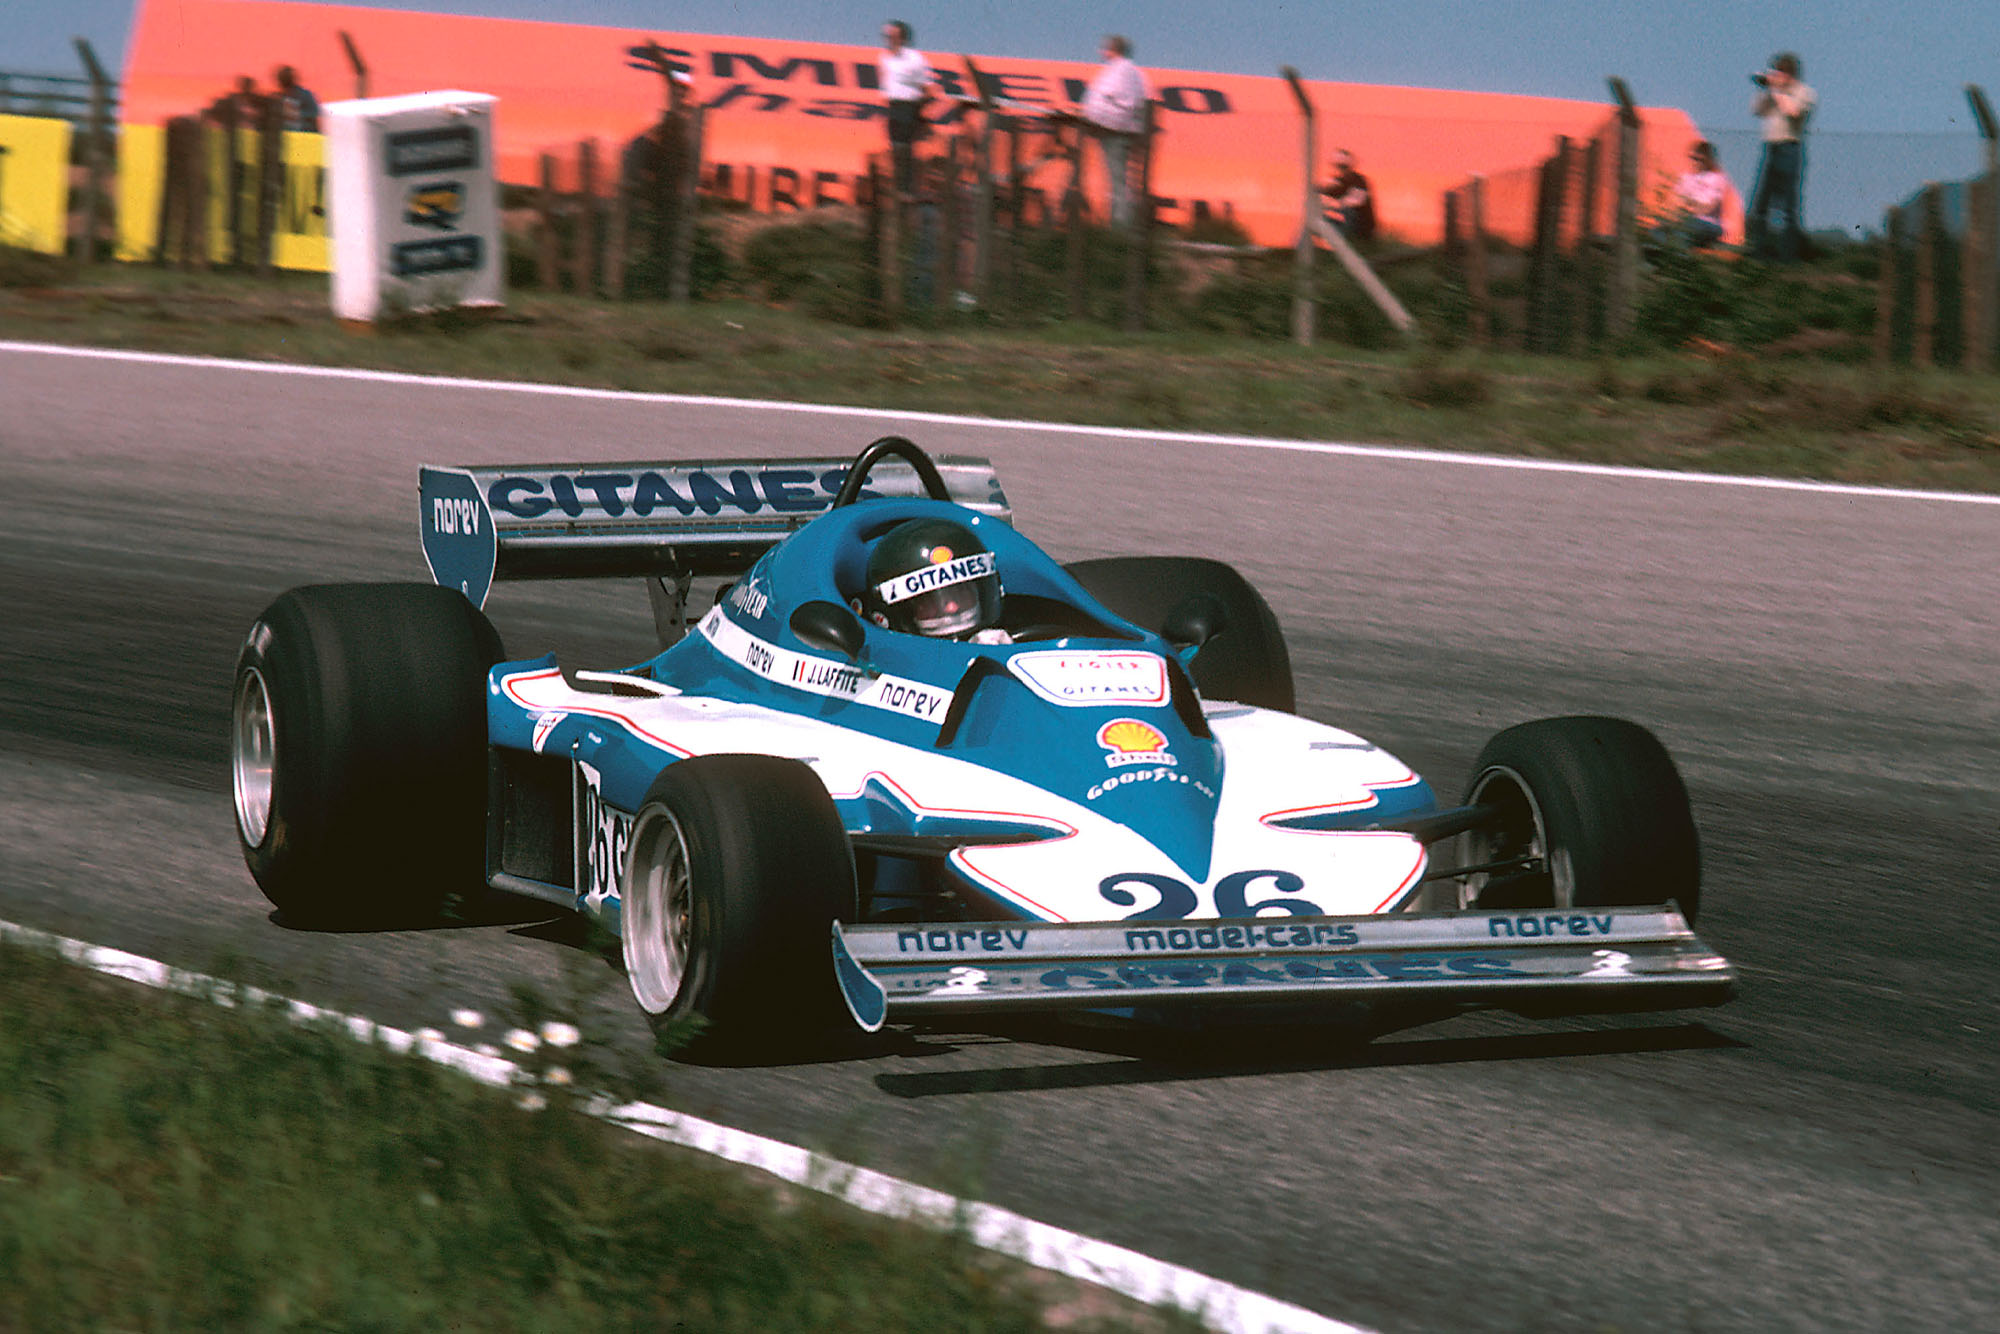 Jacques Laffite (Ligier) at the 1977 Swedish Grand Prix, Anderstorp.